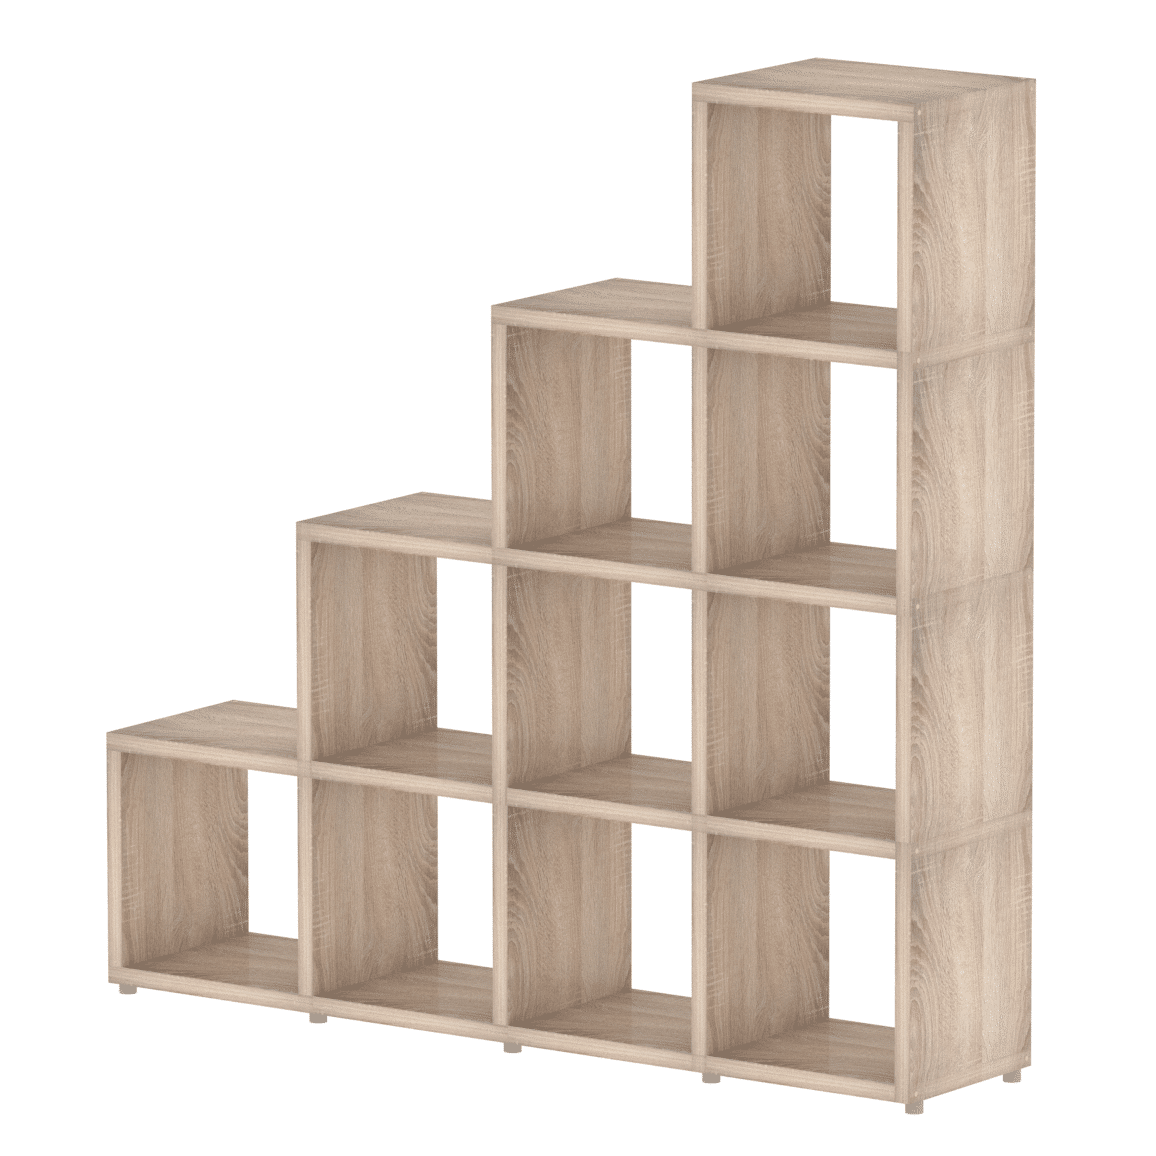 cube storage shelves modular 4 step oak 1452l x 1472h x 328d mastershelf 28872